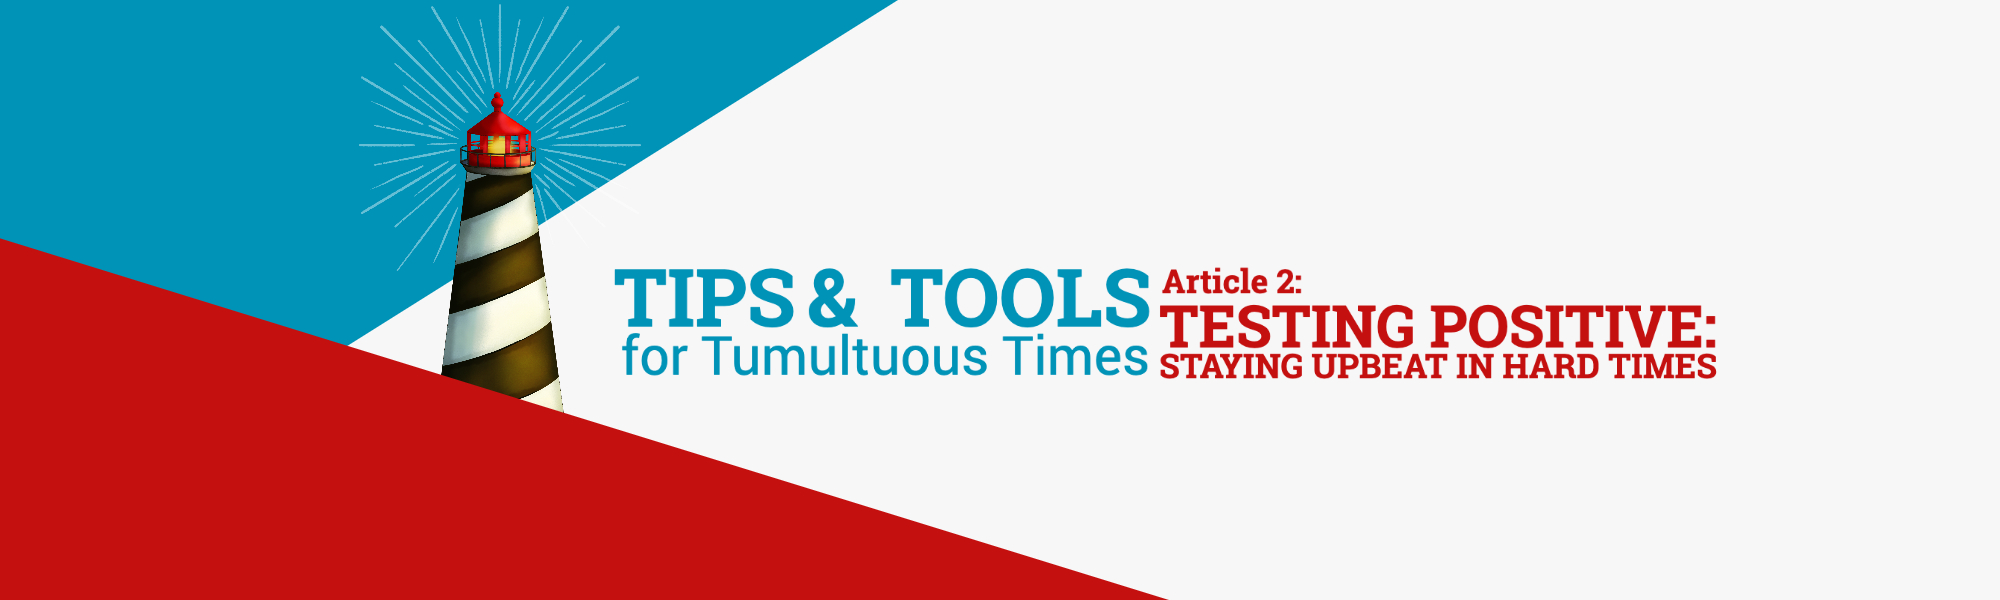 """TIPS & TOOLS, Article 2: """"Testing Positive: Staying Upbeat in Hard Times"""""""